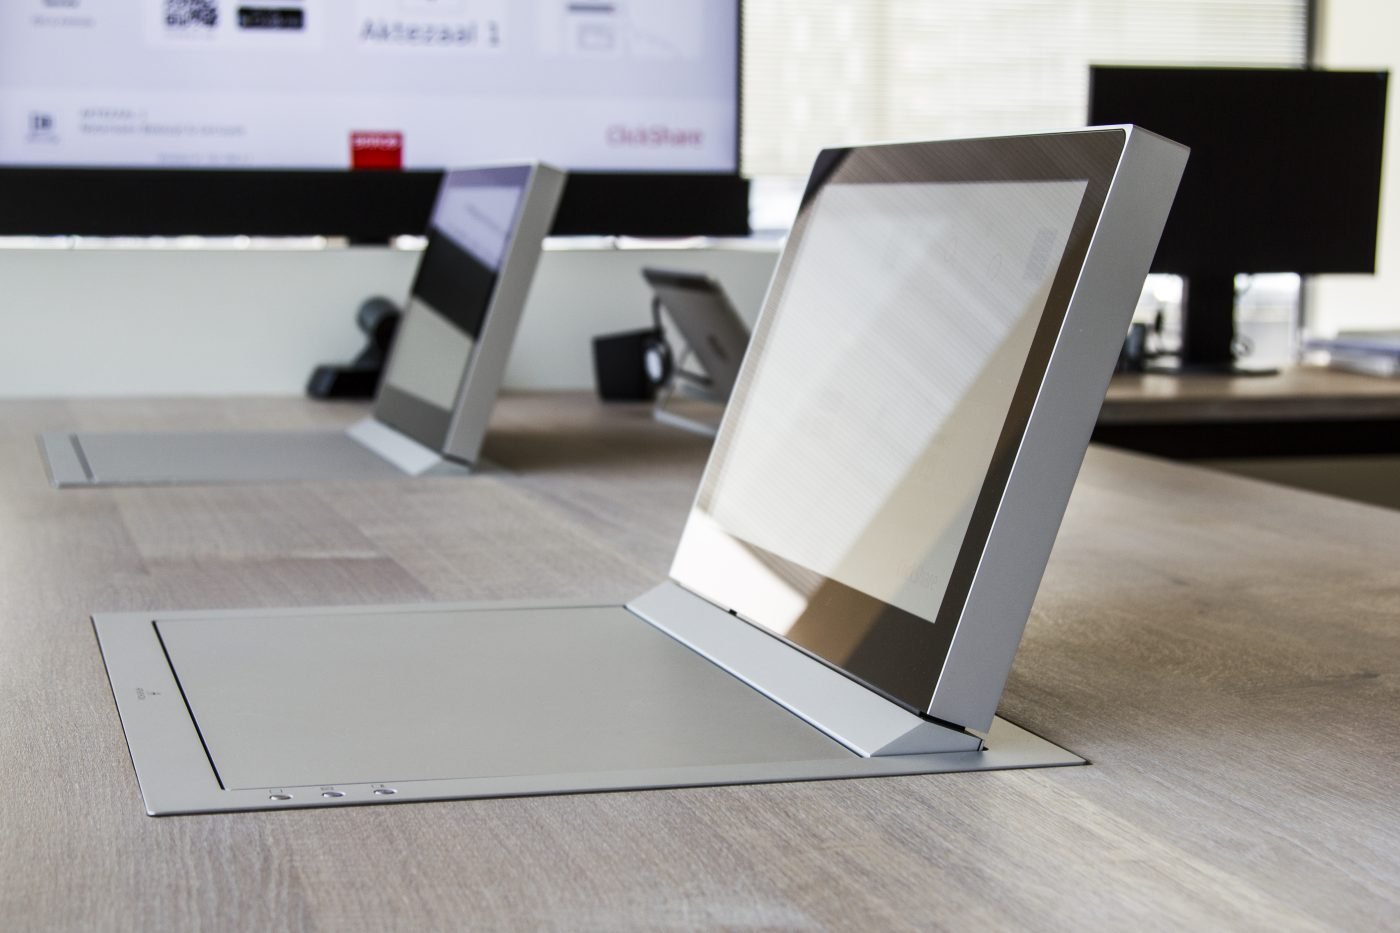 foldable rotary monitors for meeting rooms